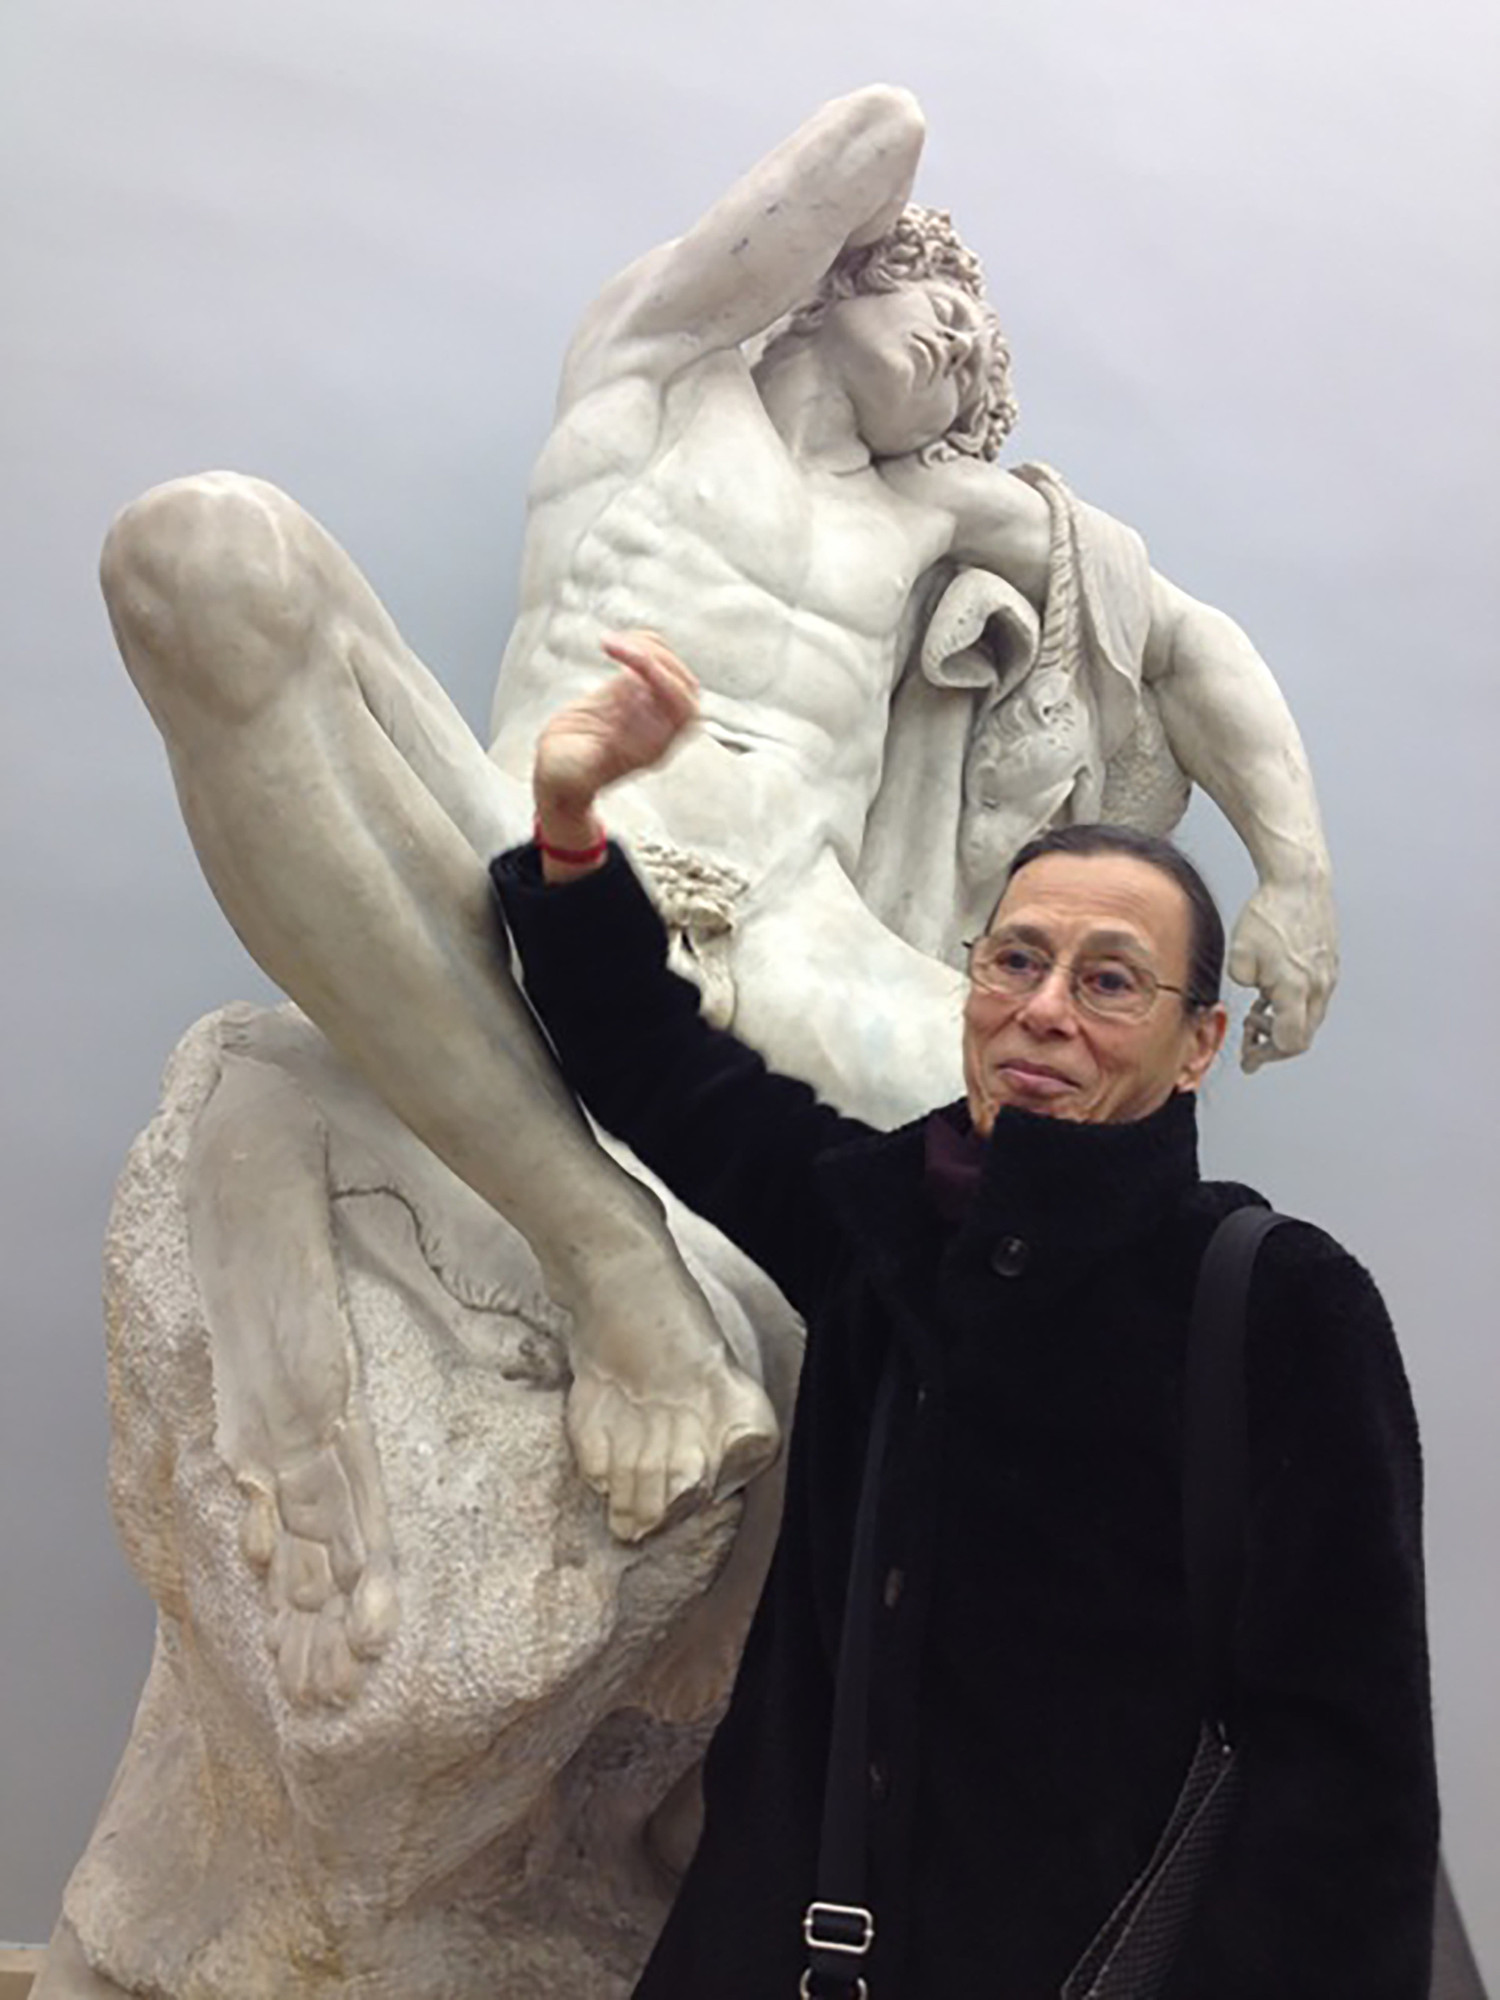 Yvonne Rainer and Cupid, Paris, 2015. Photo: Nathalie Magnan. Courtesy Yvonne Rainer